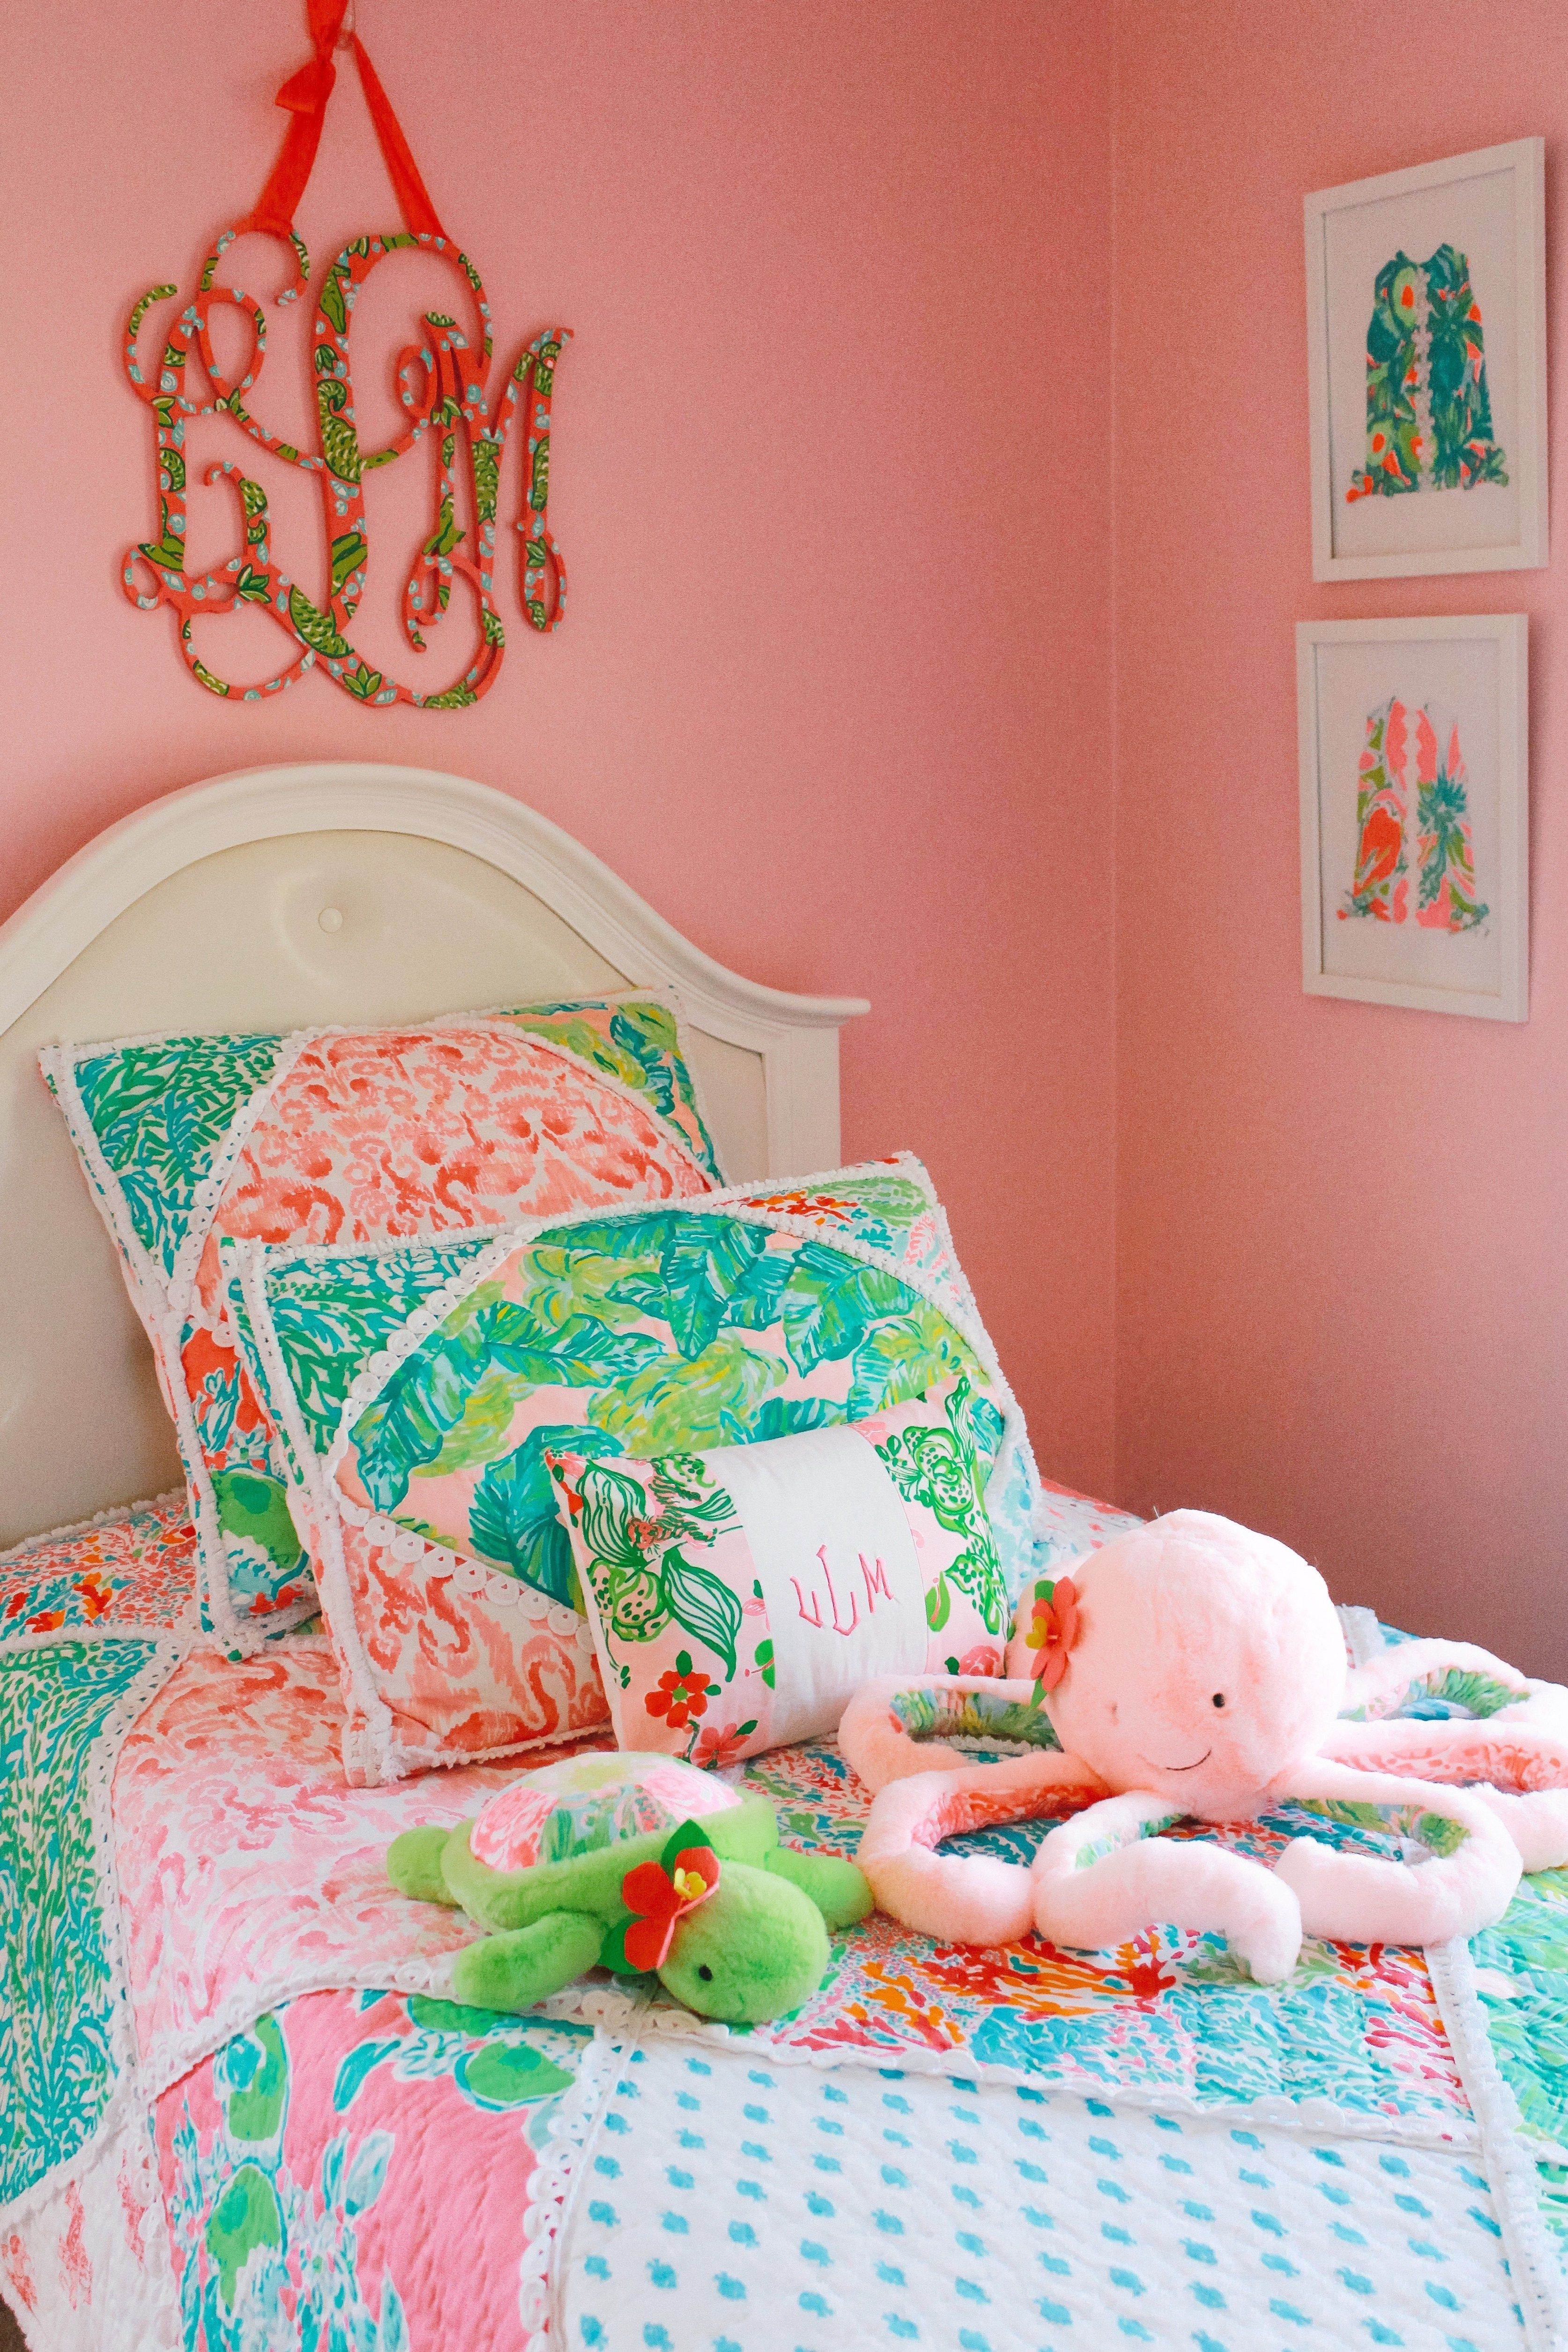 Lilly Pulitzer For Pottery Barn Kids Collection With